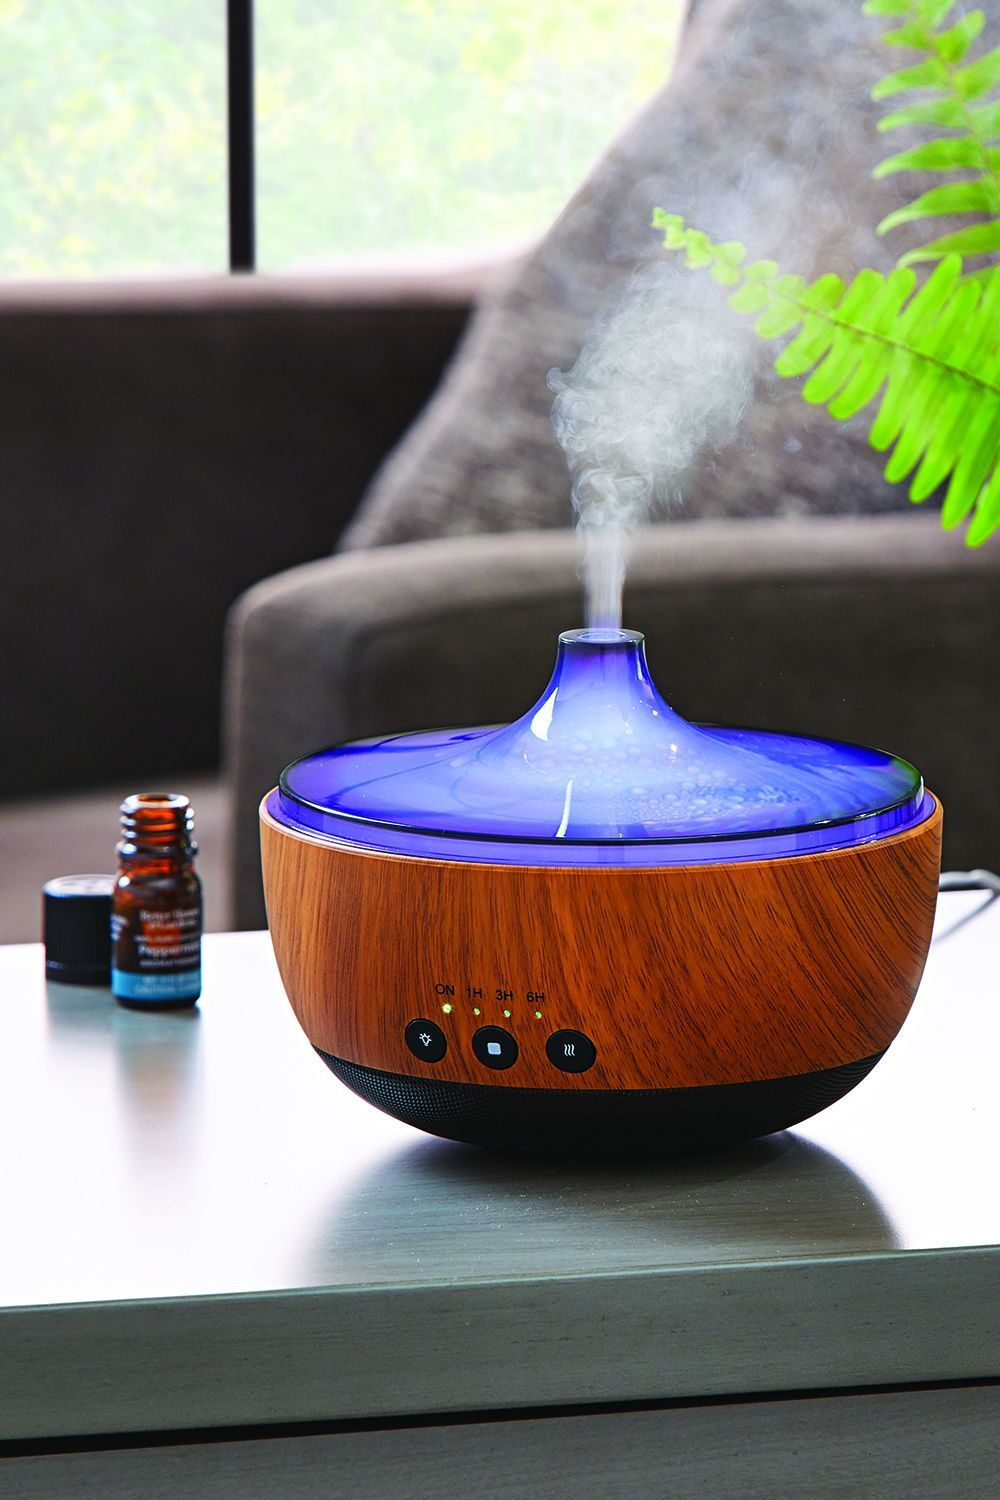 202580037f866f2027650e62d2b98149 - Better Homes And Gardens Aroma Diffuser Instructions